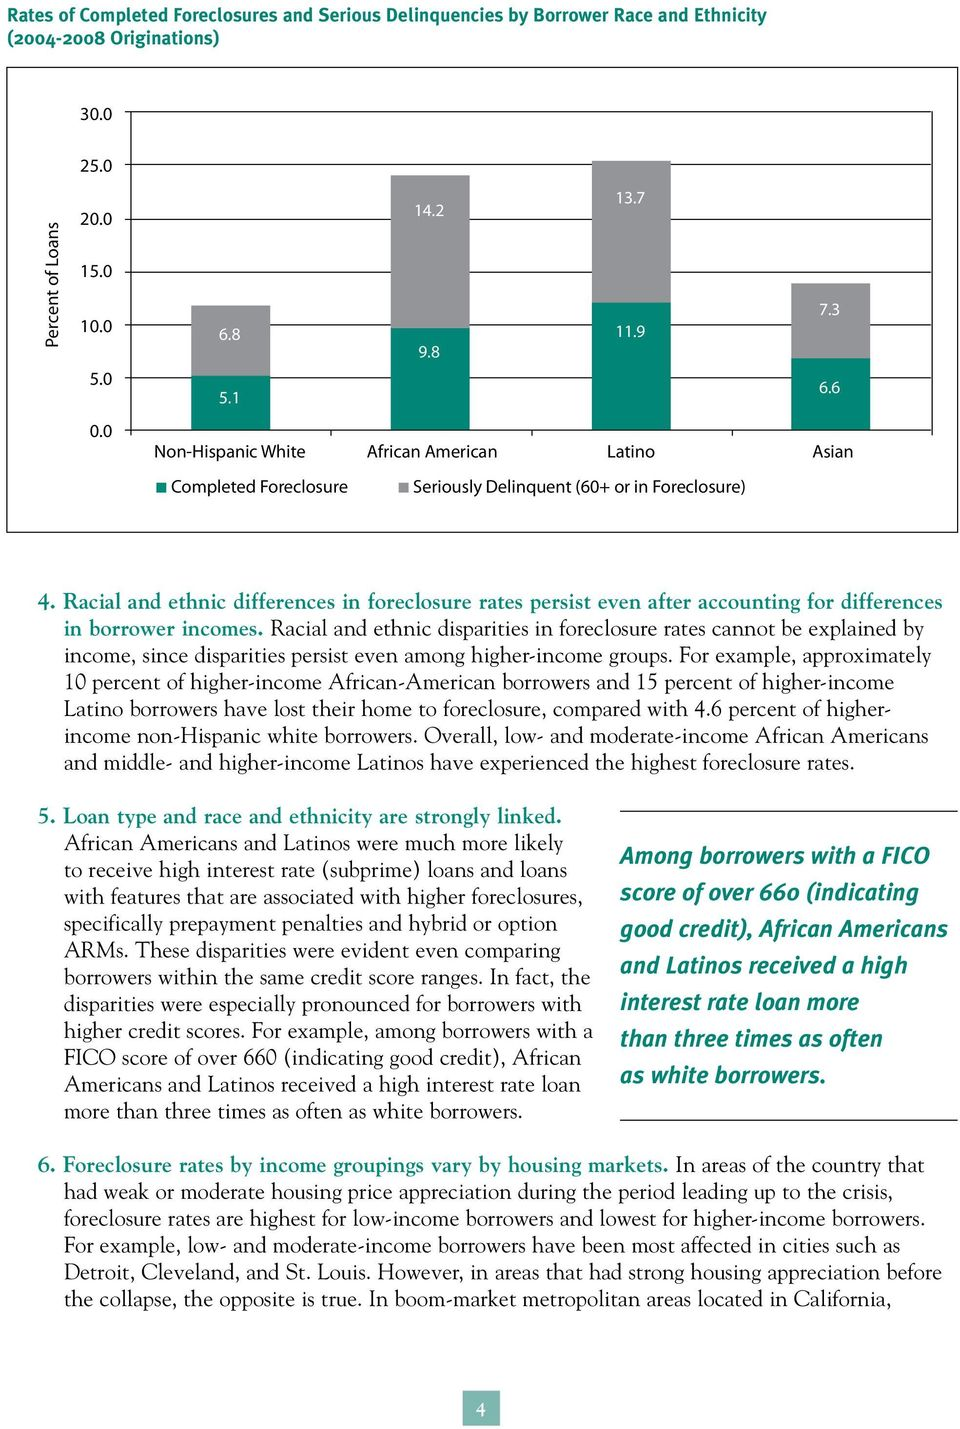 Racial and ethnic differences in foreclosure rates persist even after accounting for differences in borrower incomes.